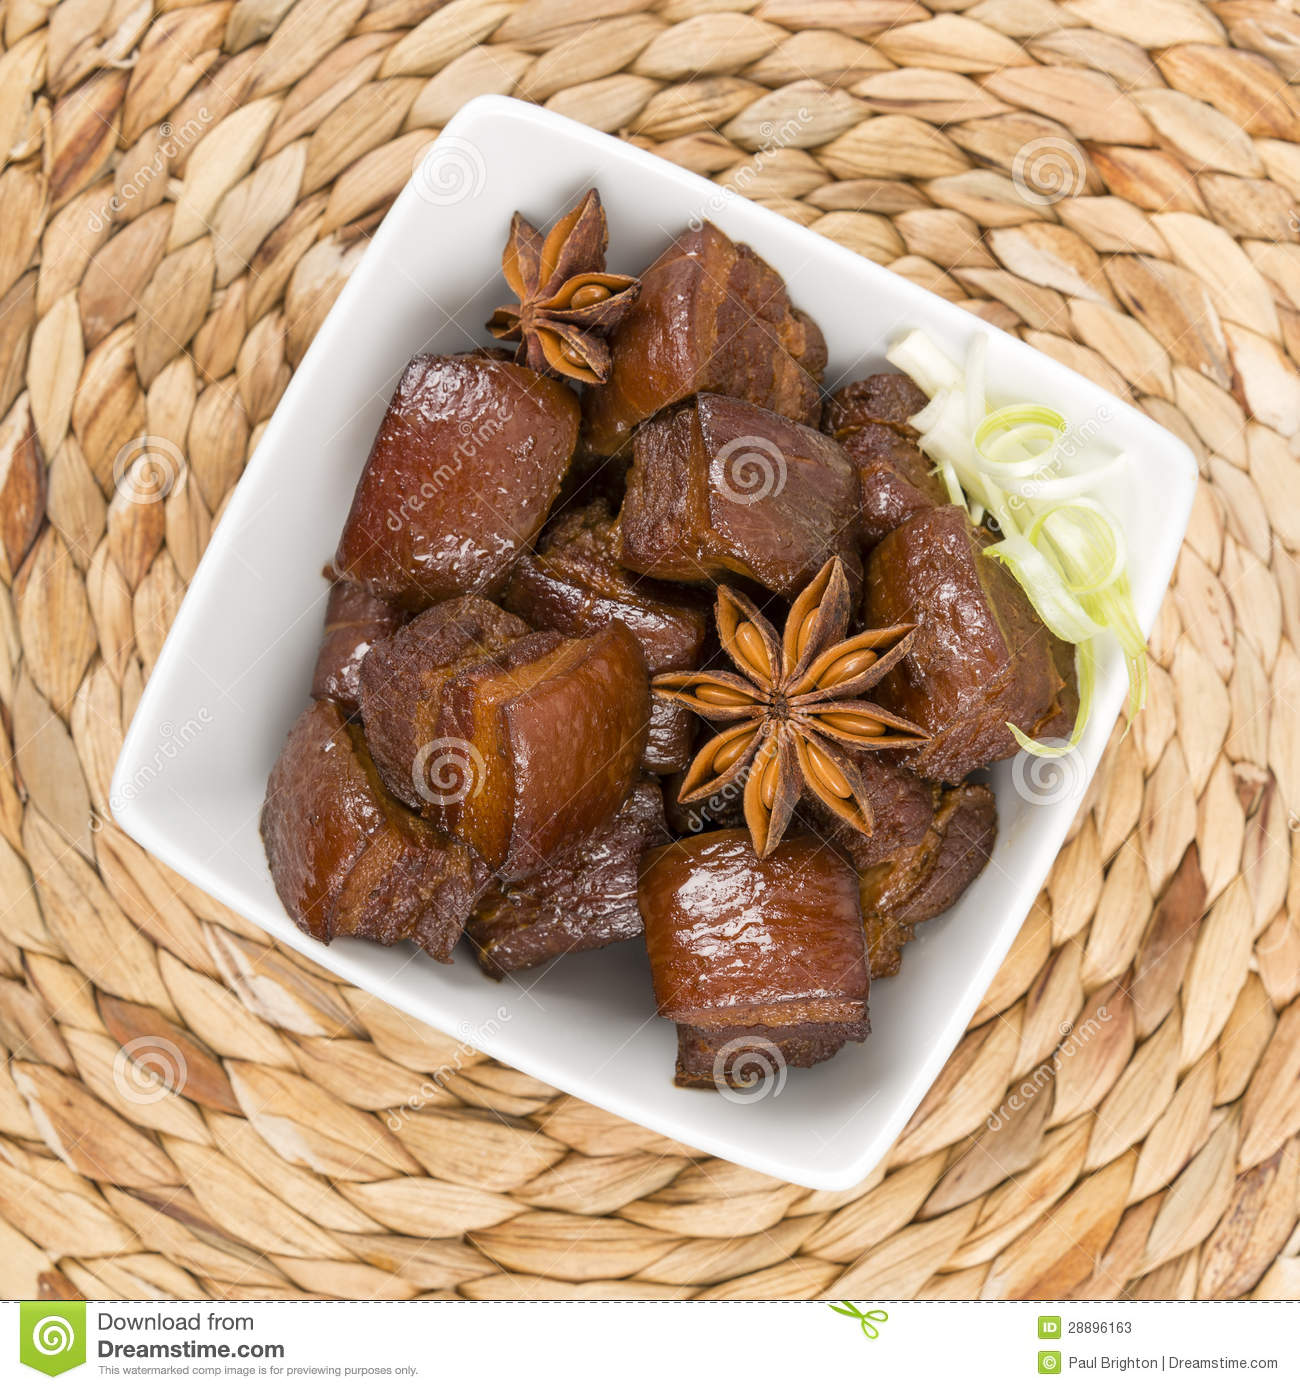 Rou (Red Cooked Pork) - Chinese pork belly caramelized and braised ...